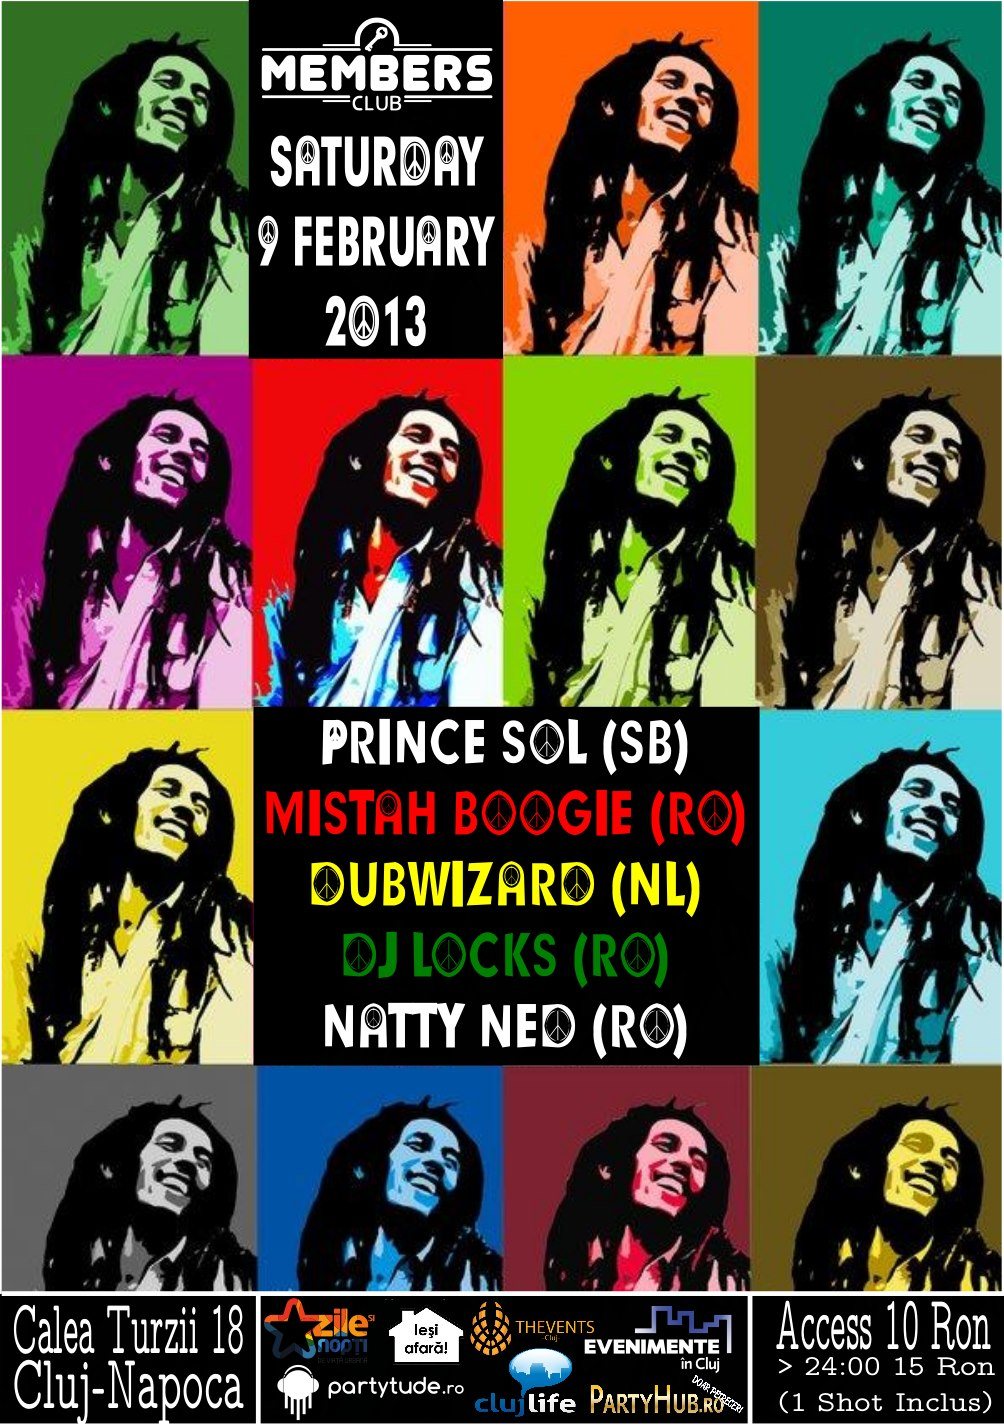 Bob Marley Tribute @ Members Club